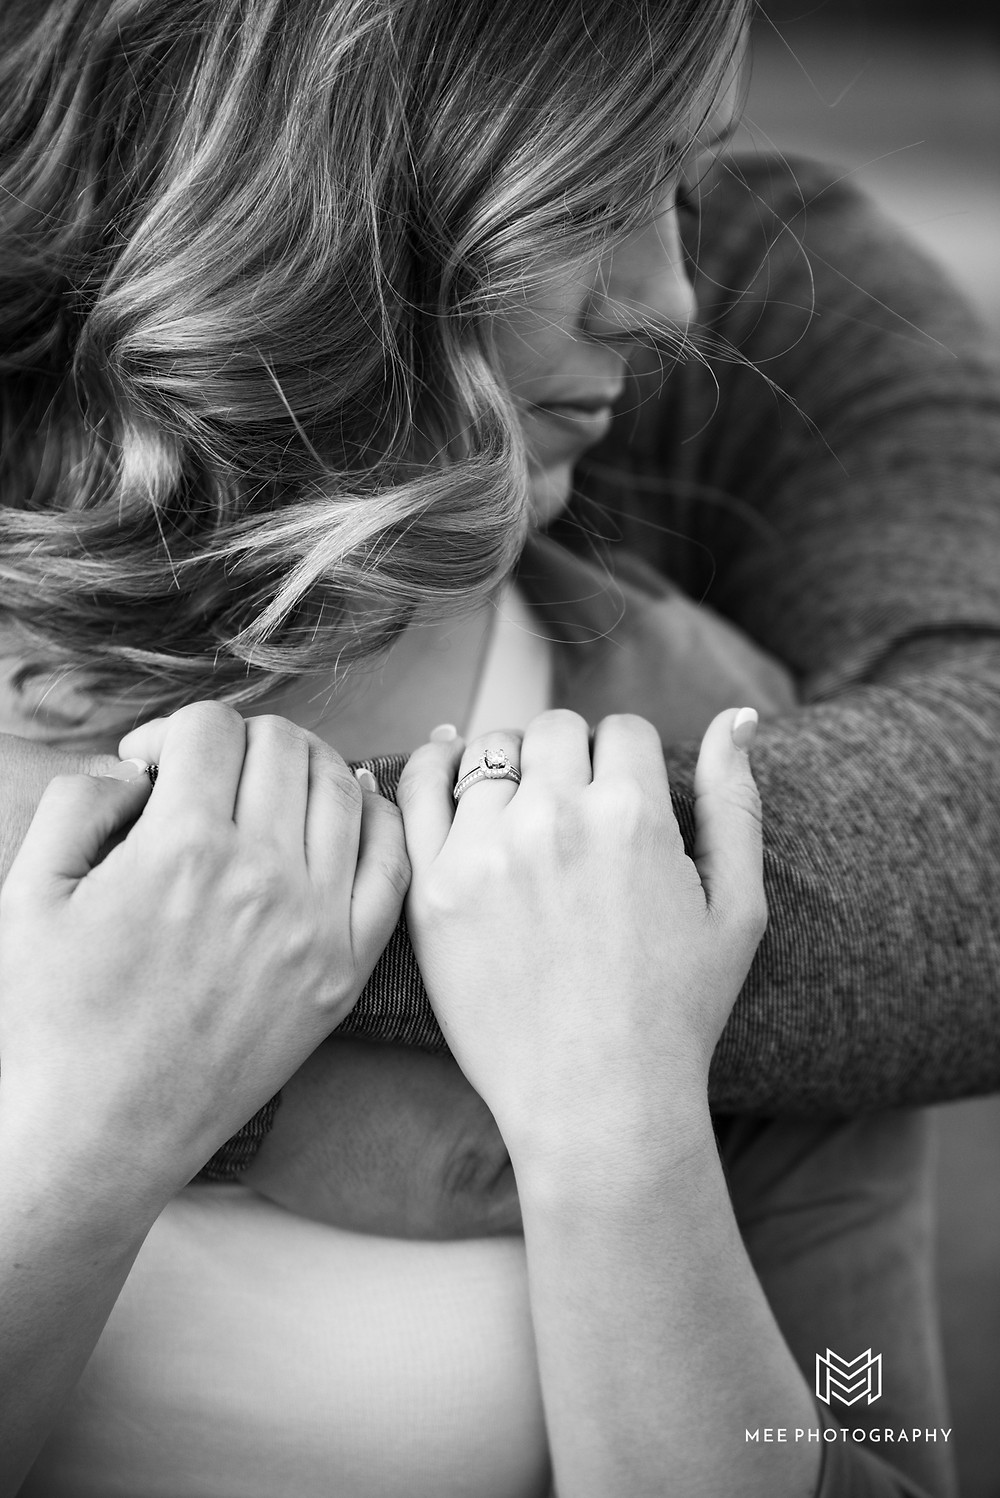 Romantic black and white engagement photo of couple embracing